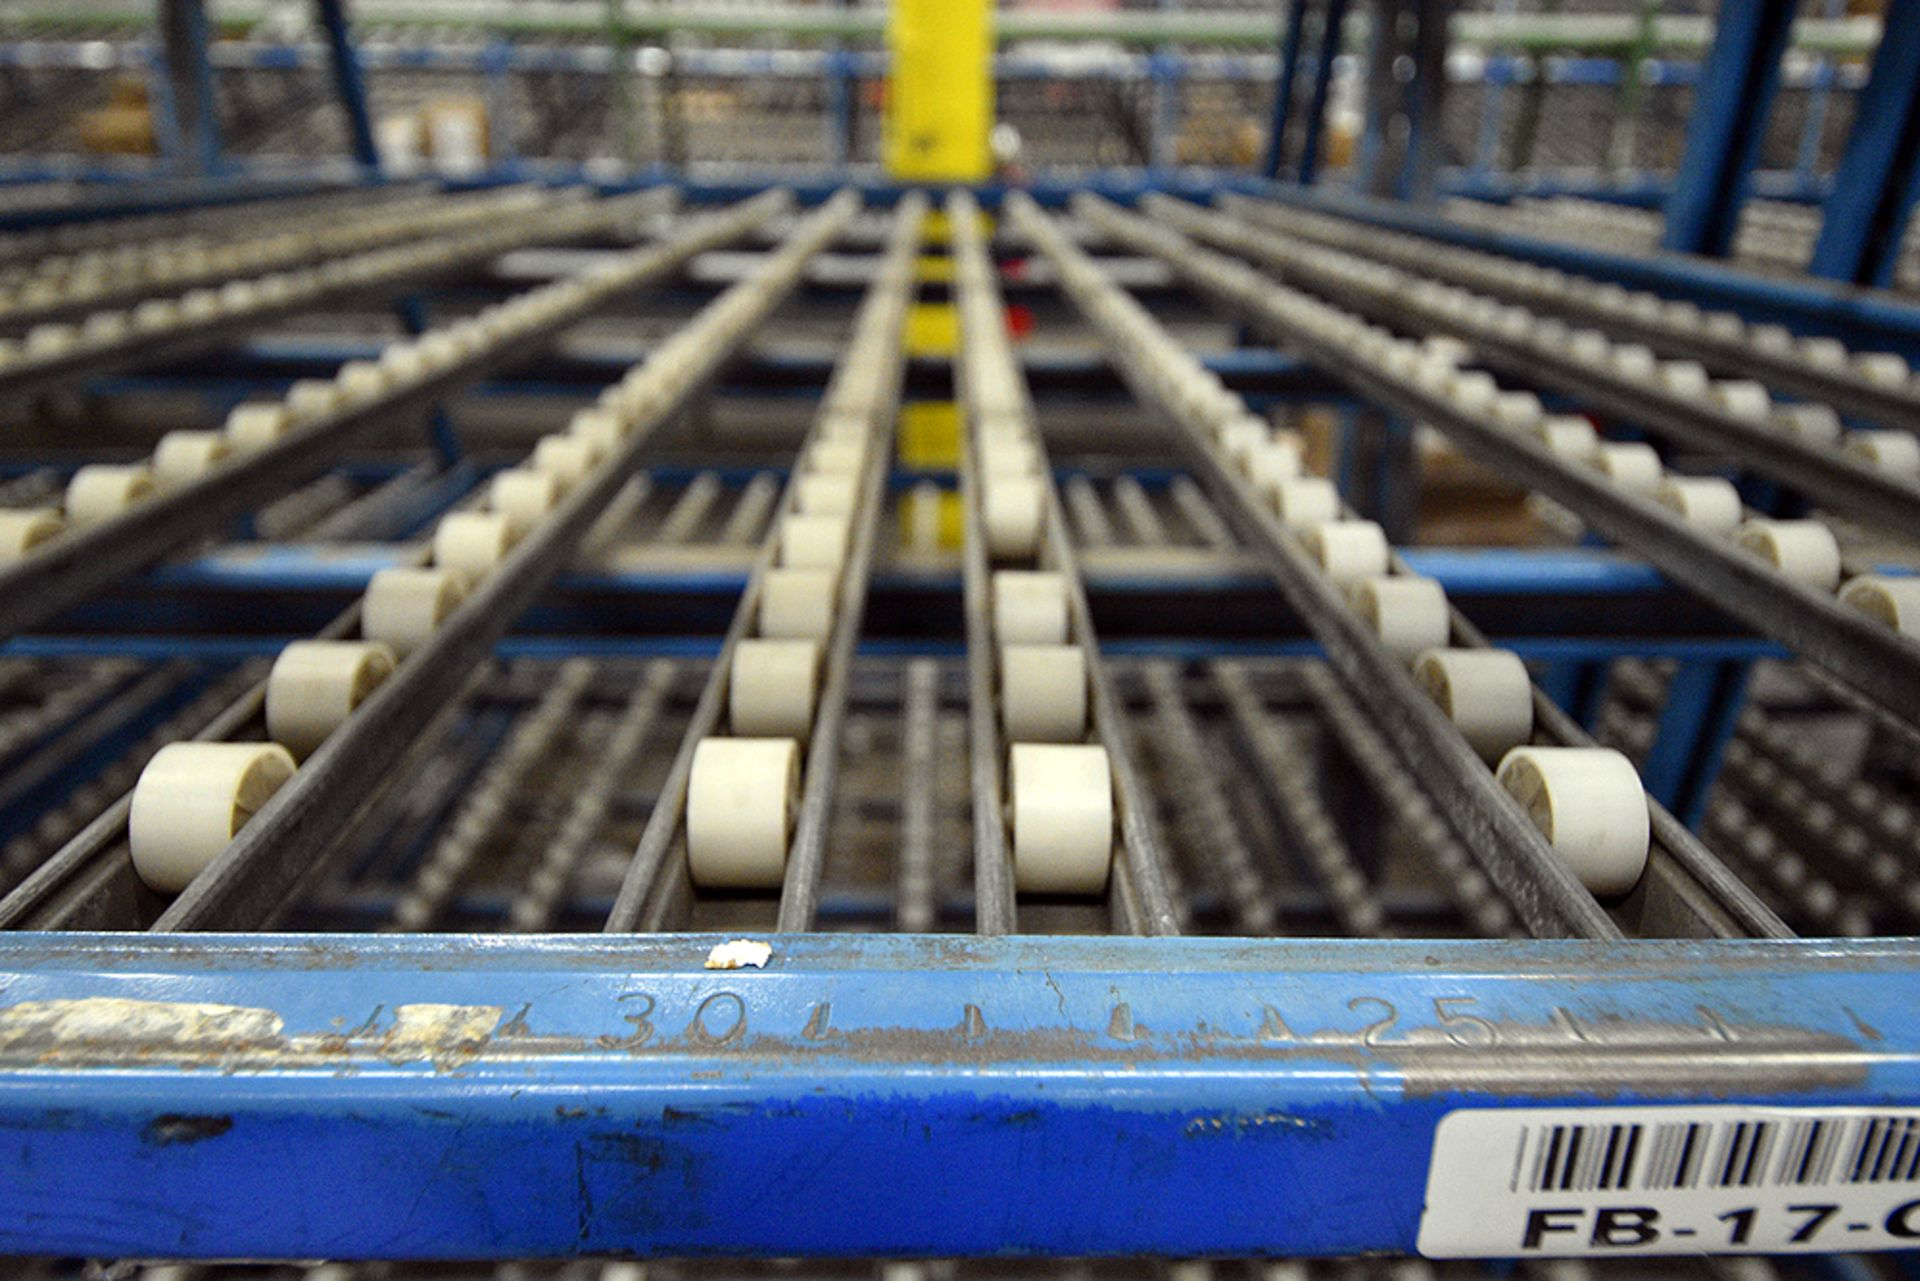 """4-Tier Gravity Fed, Carton Flow Rack (116""""x125""""""""x95""""H) (108""""x1"""" Rollers) - Image 2 of 3"""